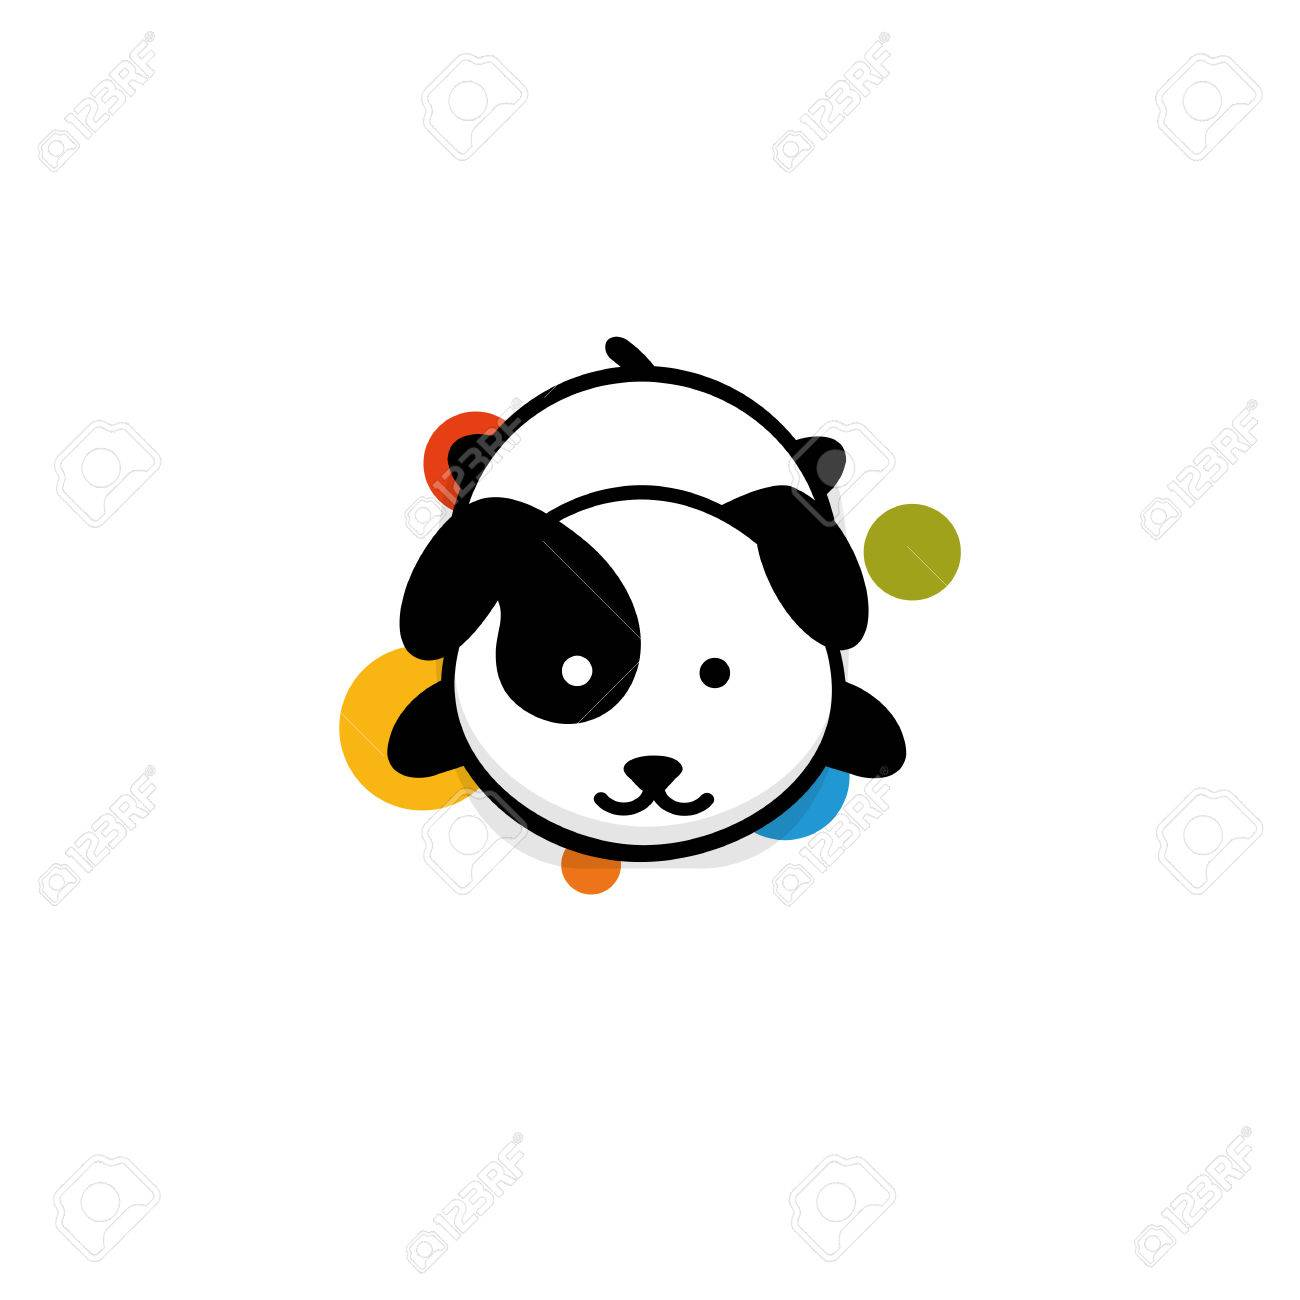 Cute Dog Rest Lying Down Vector Illustration Baby Puppy Logo Royalty Free Cliparts Vectors And Stock Illustration Image 80443728